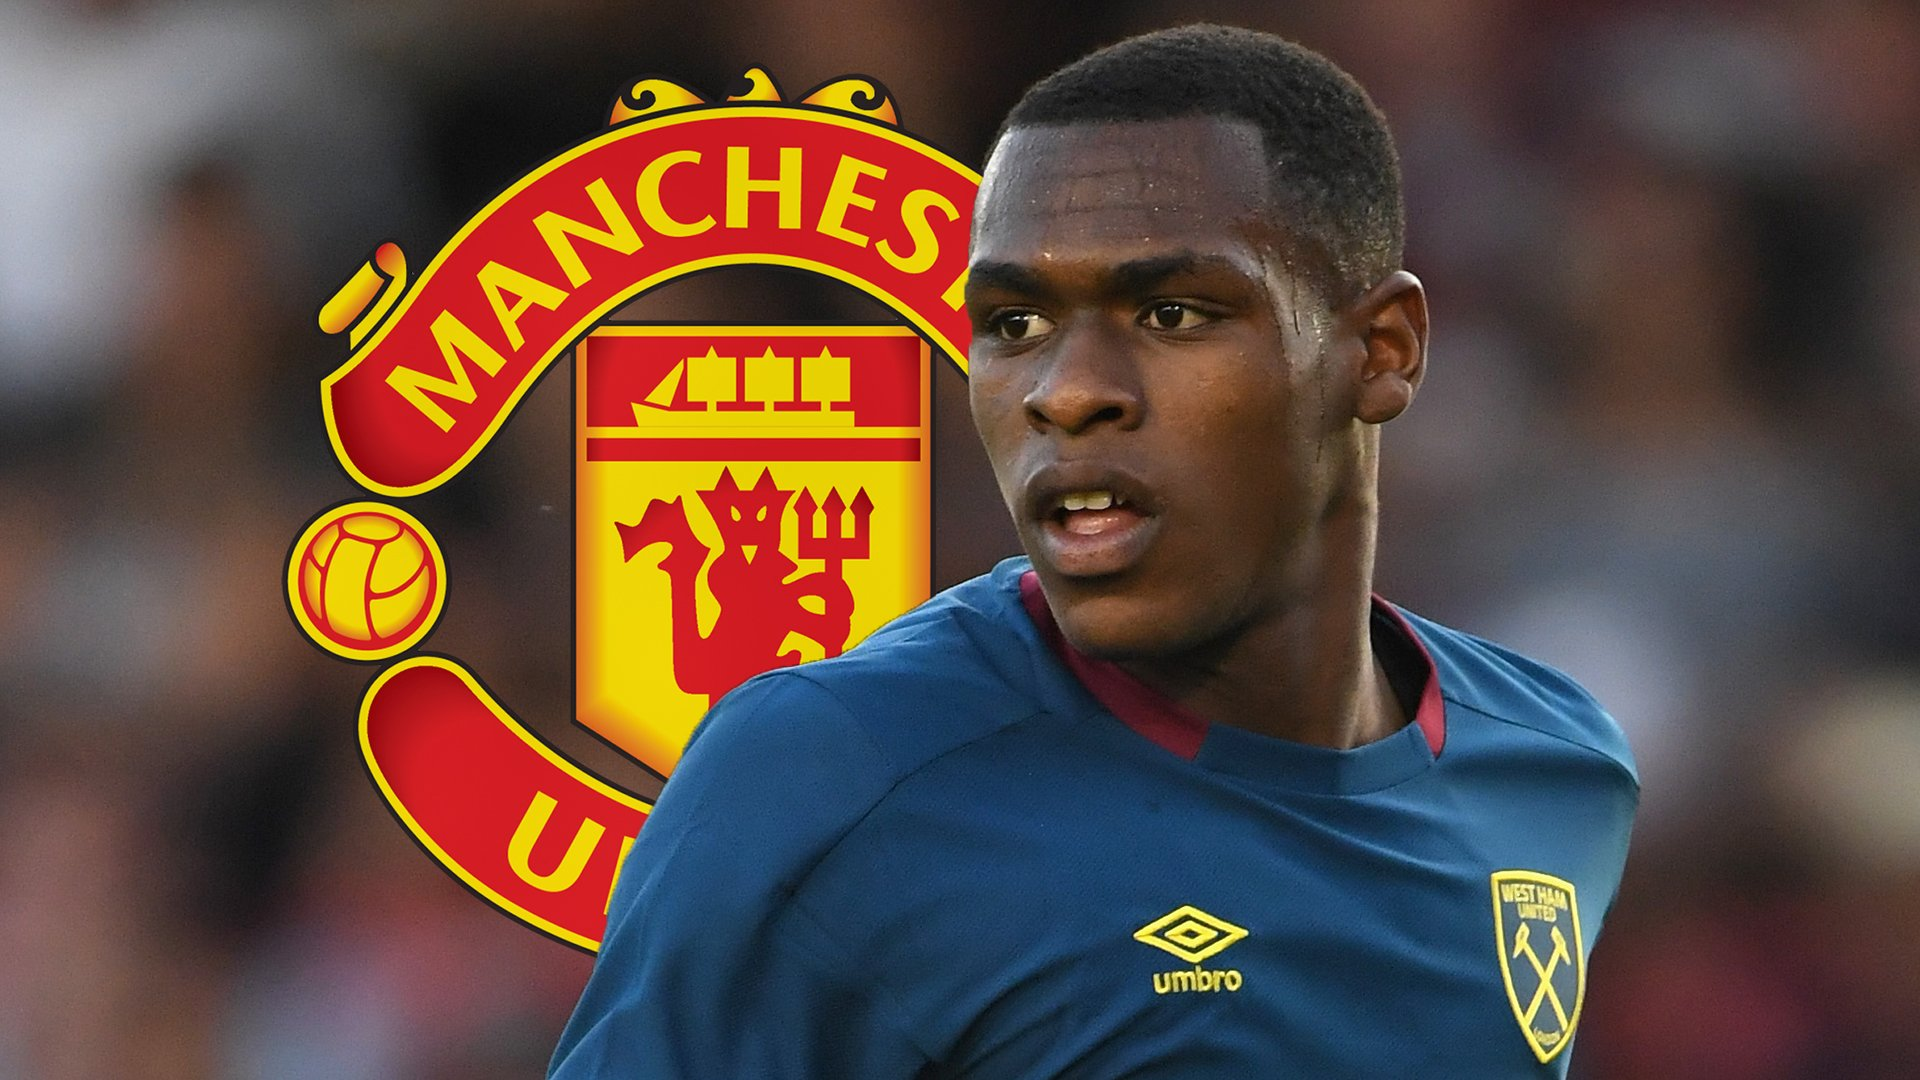 Manchester United offer West Ham £45m plus player for Issa Diop